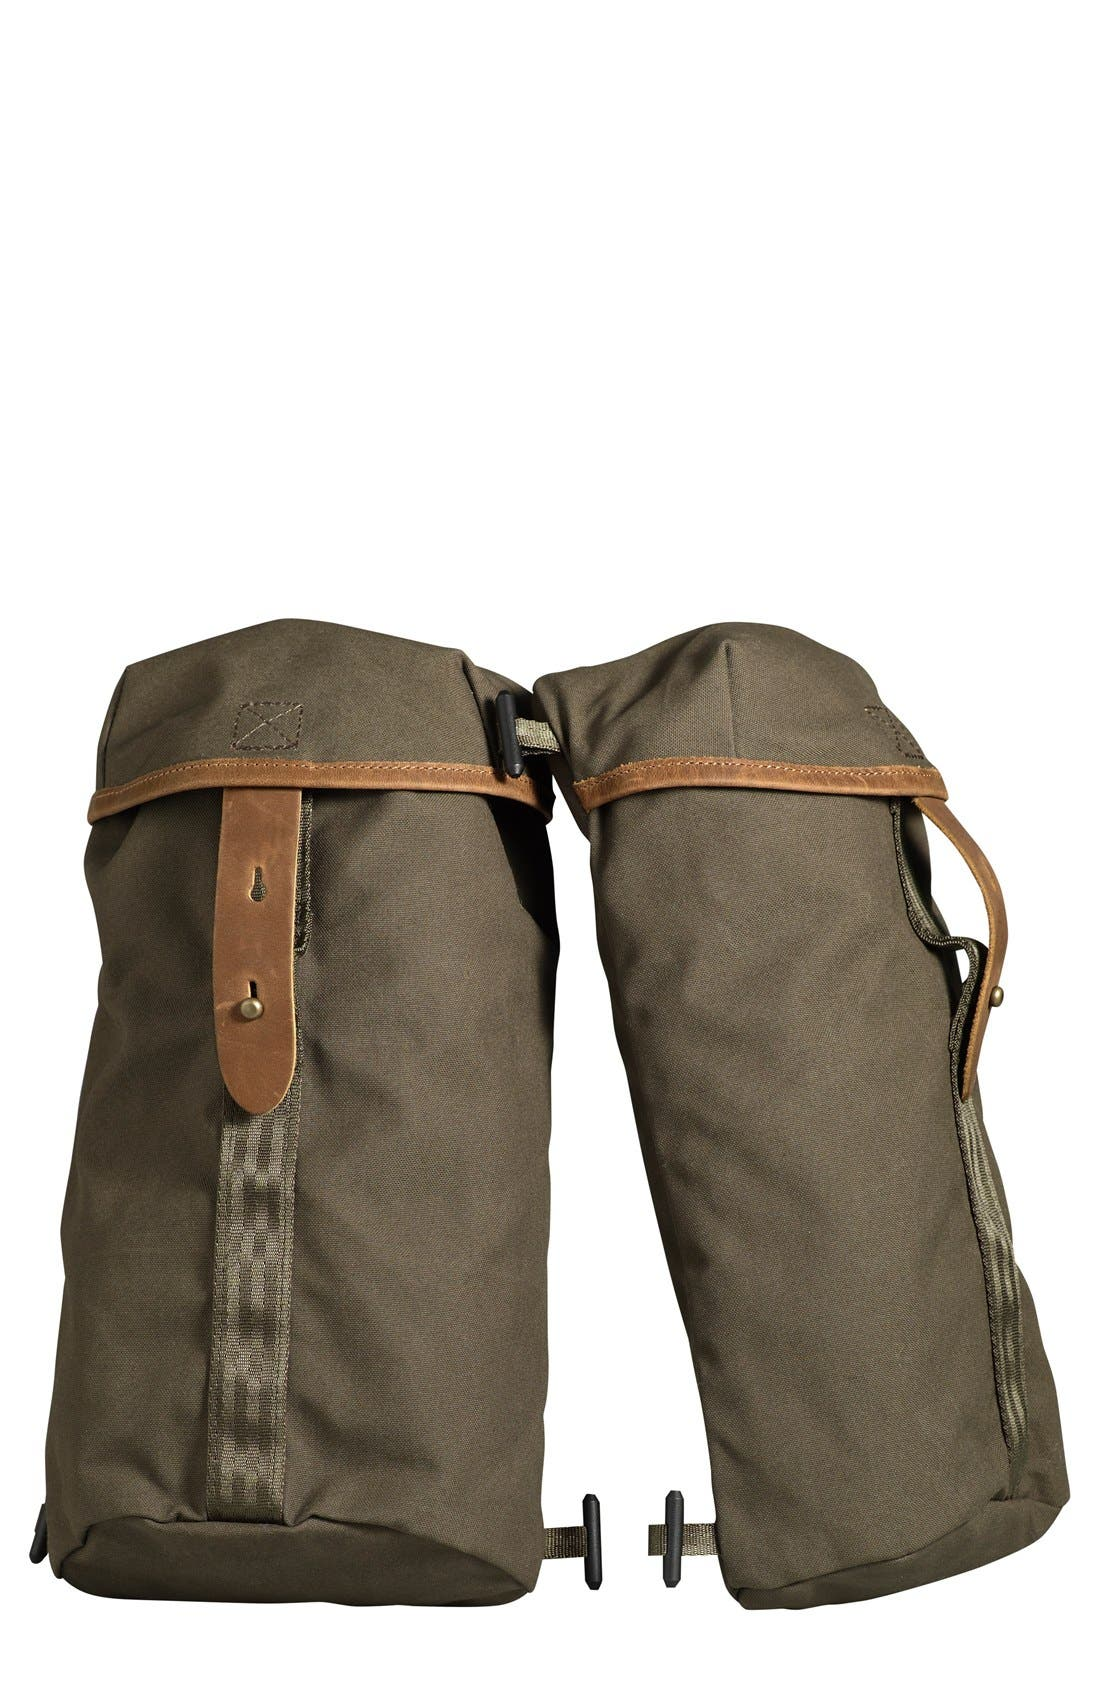 Main Image - Fjällräven 'Stubben' Side Attachment Bags